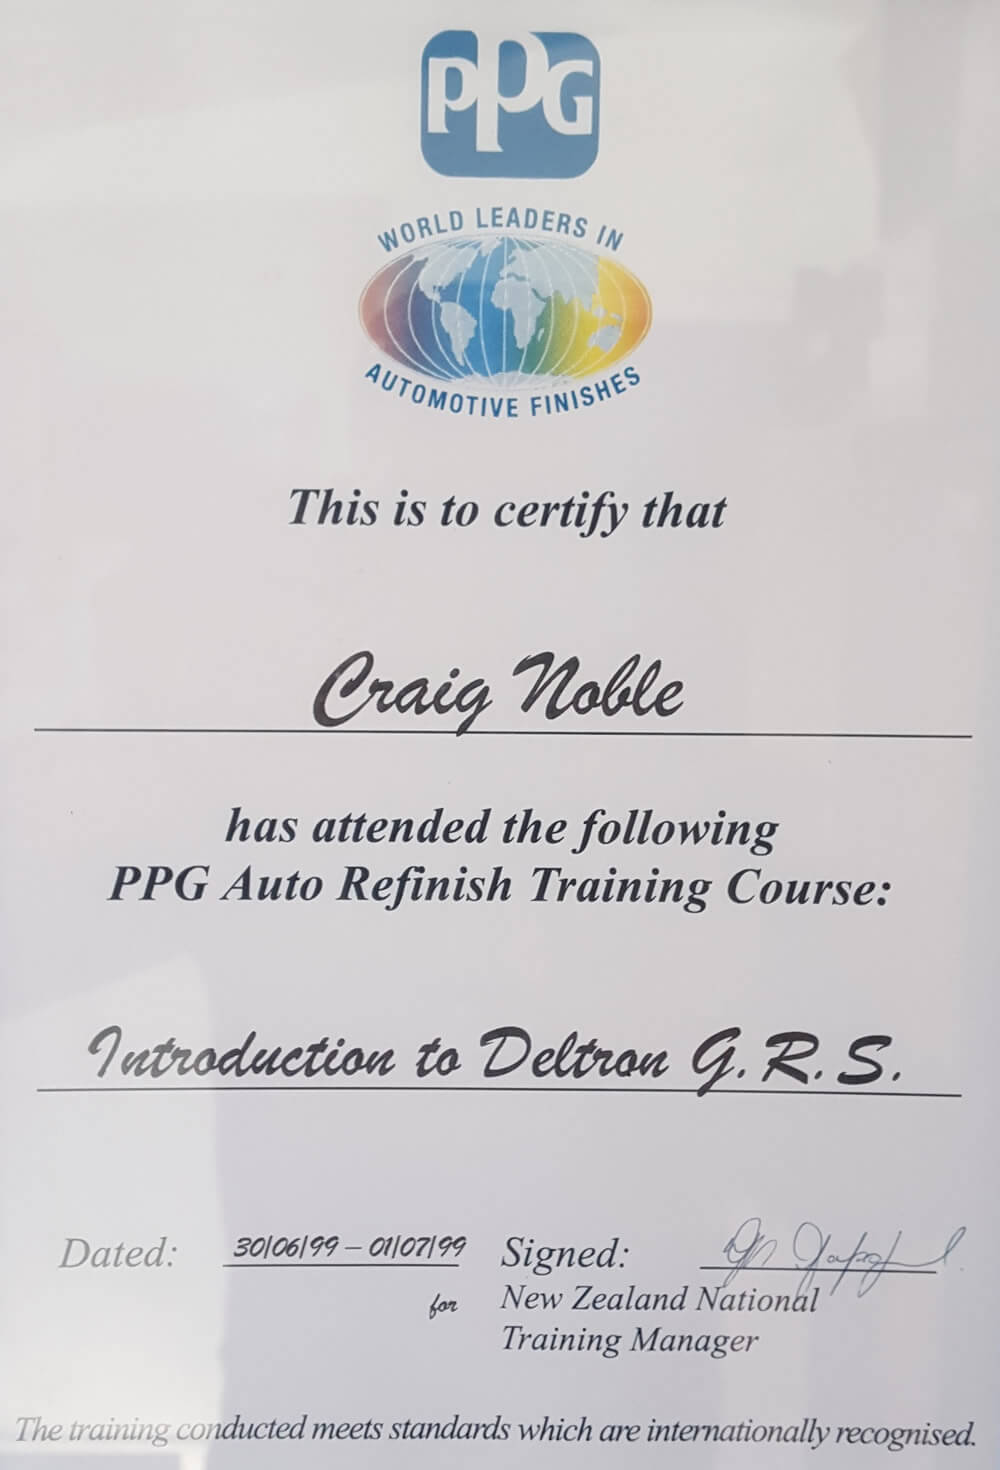 PPG Automotive Refinish Training Certificate Of Craig Noble Marlborough NZ